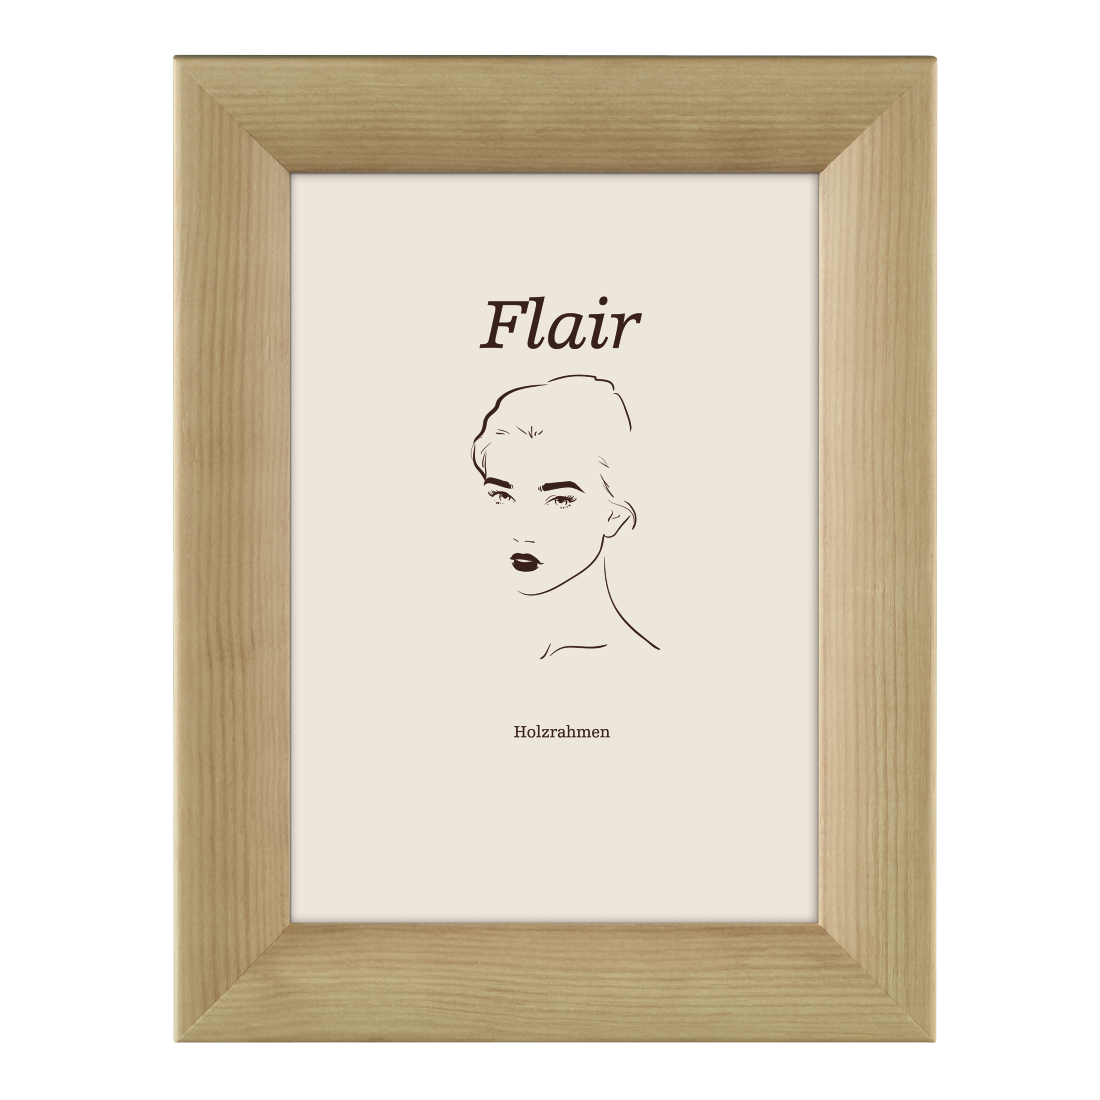 00125790 Hama Flair 2 Wooden Frame Birch 20 X 30 Cm Hama De